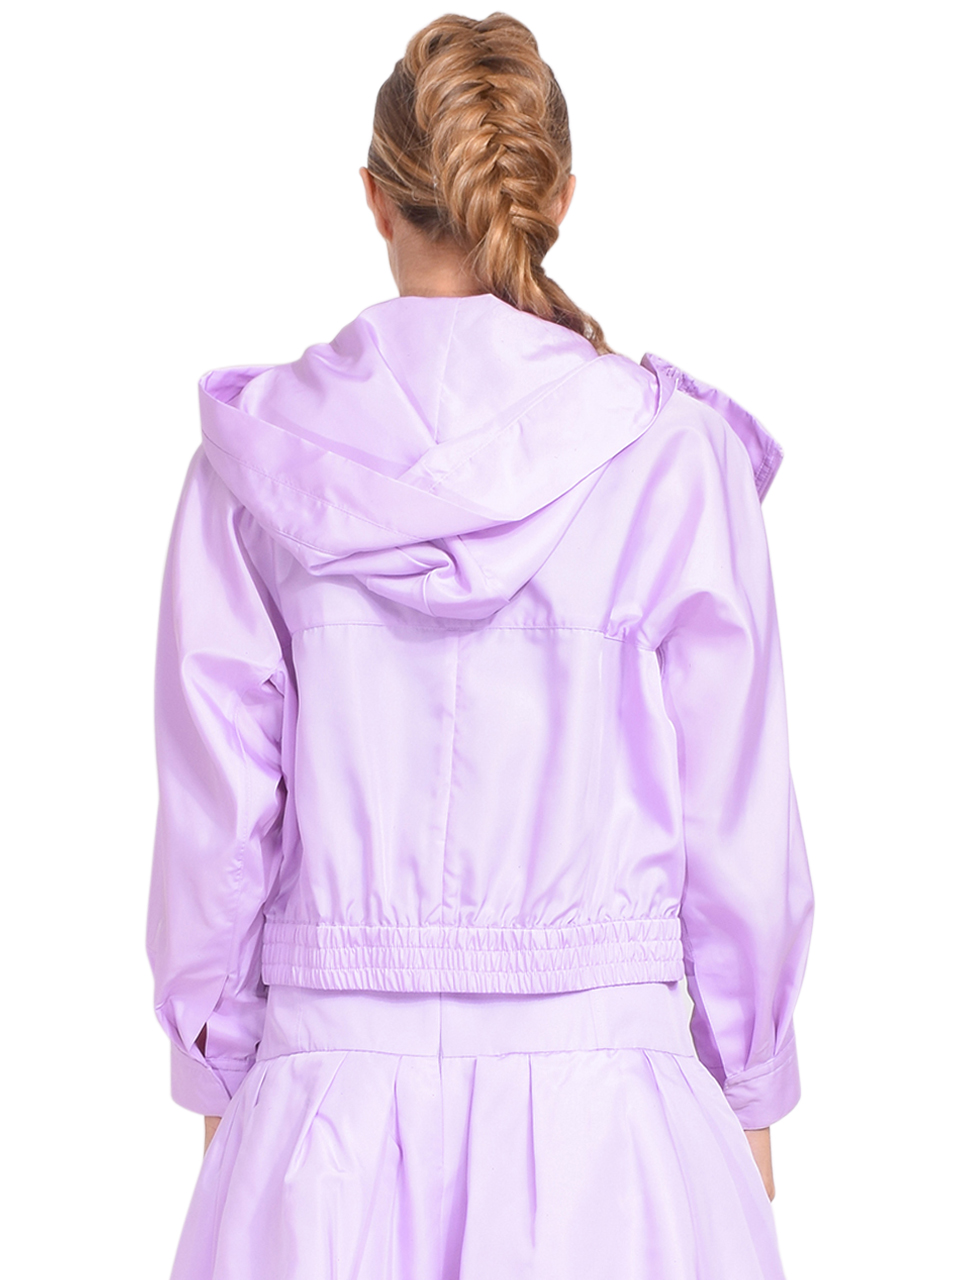 3.1 Phillip Lim Taffeta Hooded Boxing Jacket in Lavender Back View